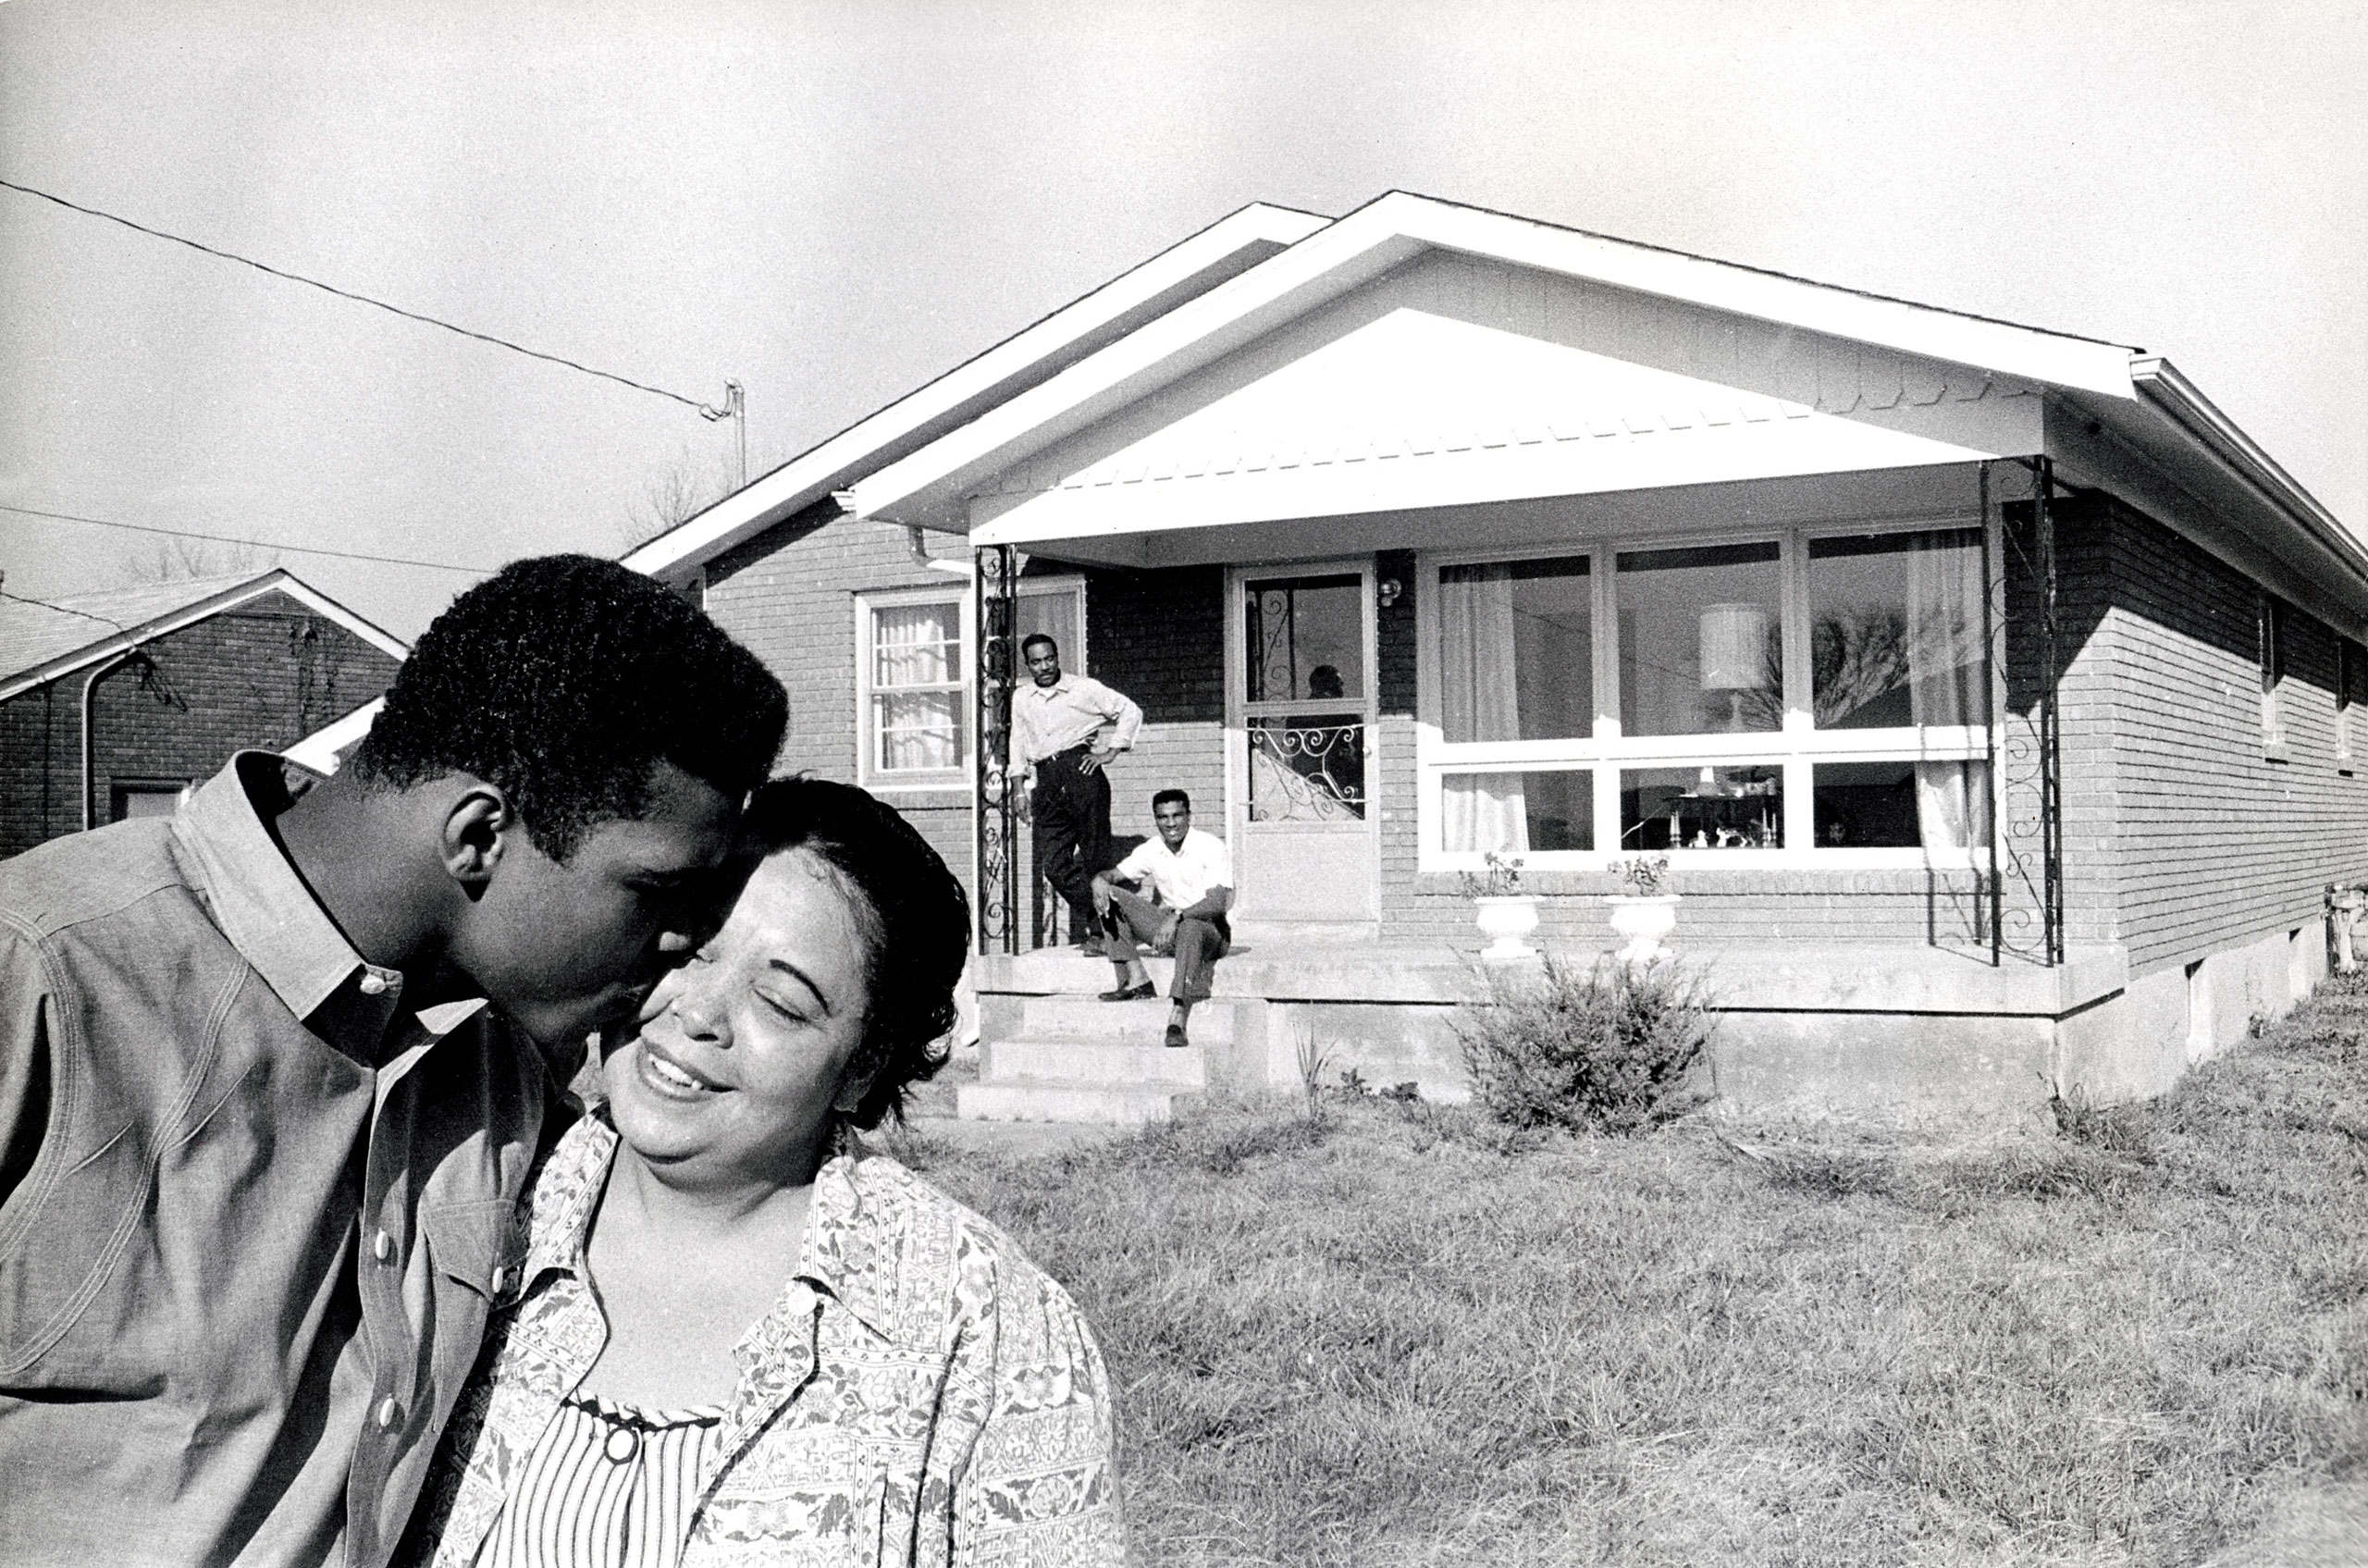 Ali is pictured with his mother, Odessa, and his Father Cassius and brother Rudolph in the background at his family home in Louisville, Ky., circa 1965.